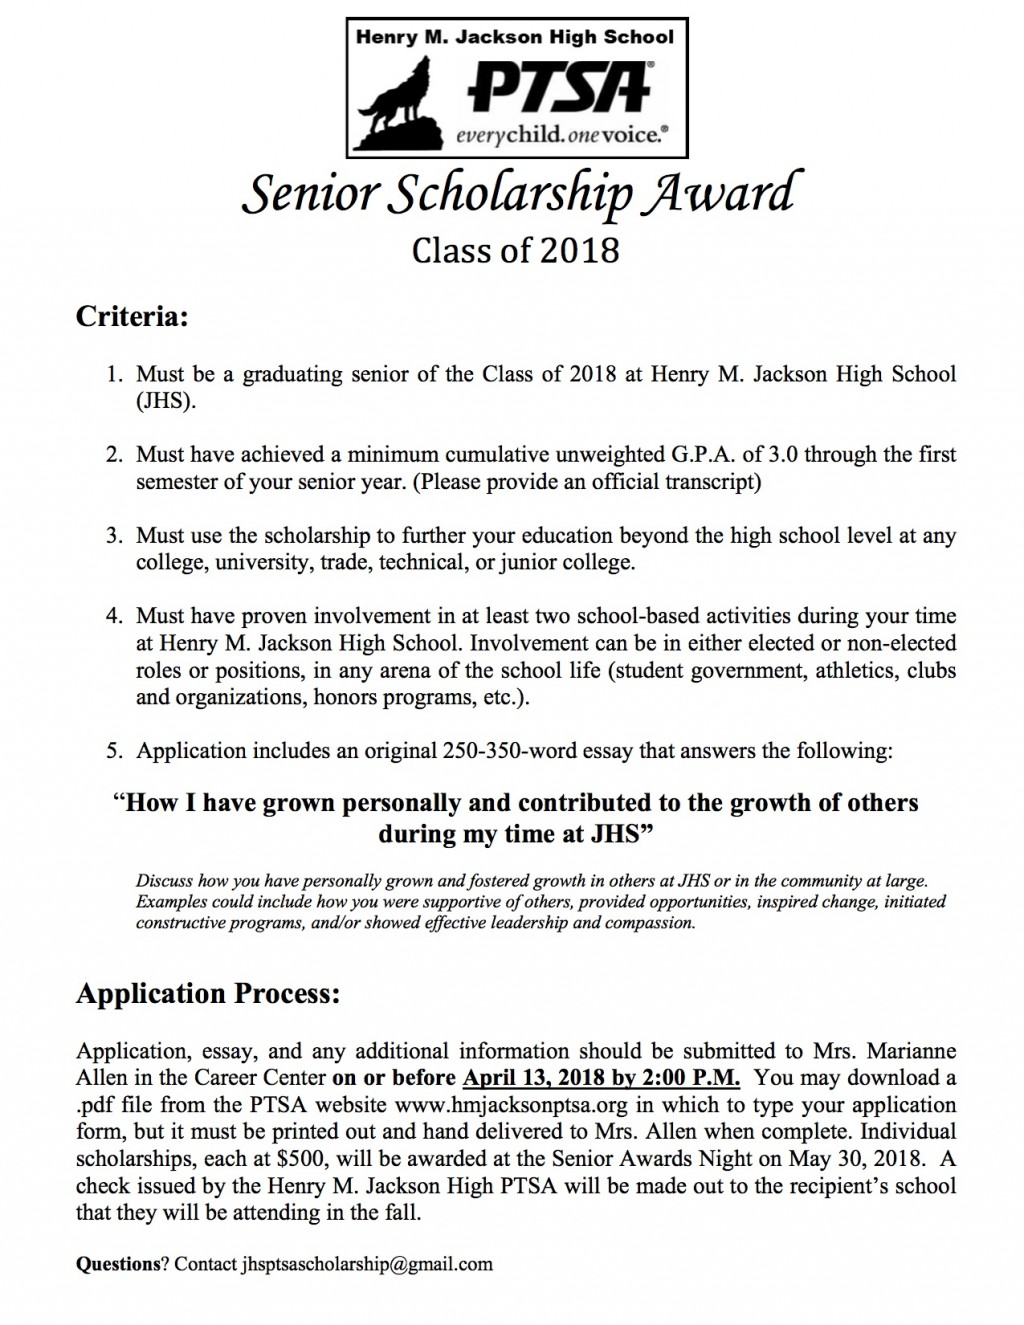 007 Senior Scholarships Henry M Jackson Ptsa No Essay For College Students Scholarship Application 201 With Unbelievable Without Requirements Essays Required Large